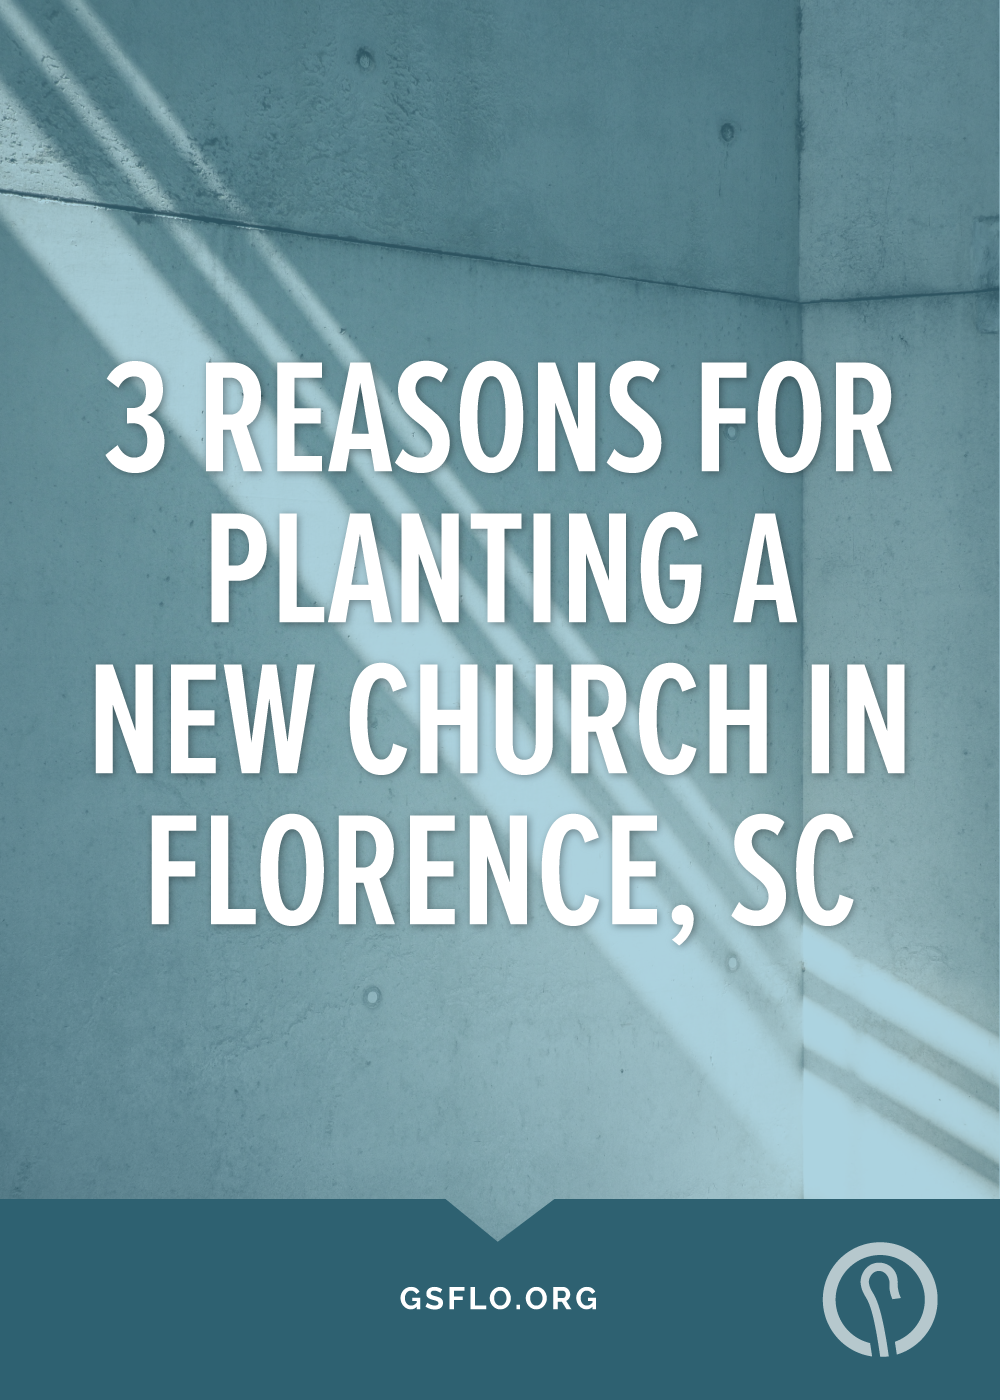 3 Reasons for Planting a New Church in Florence, SC - Good Shepherd Presbyterian Church